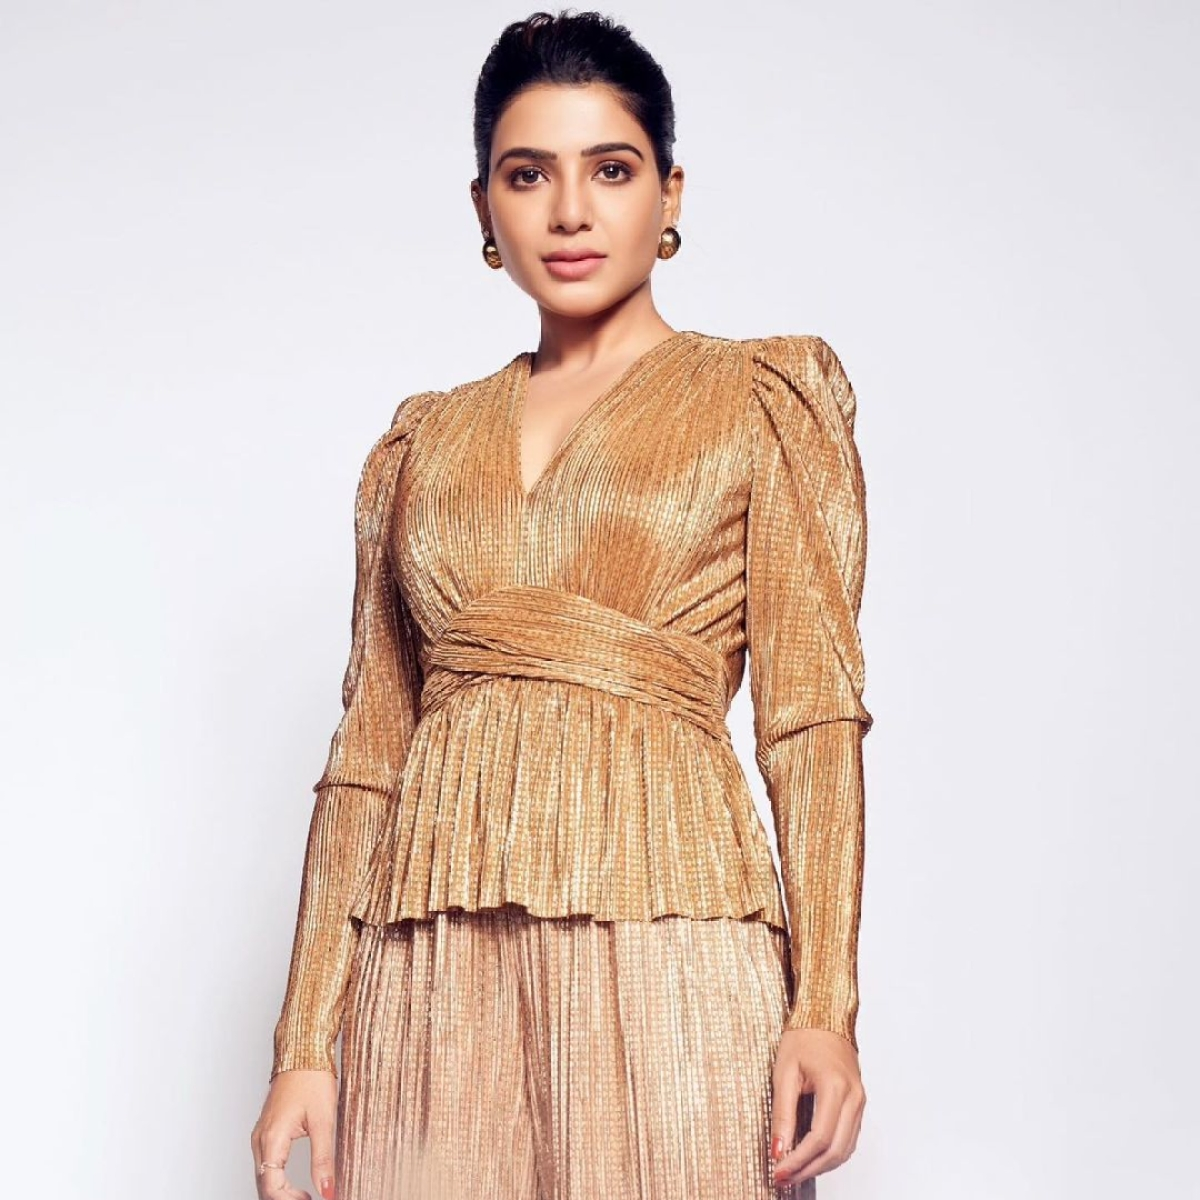 Samantha Akkineni says she used to have 'sleepless nights' because of trolls, but not anymore